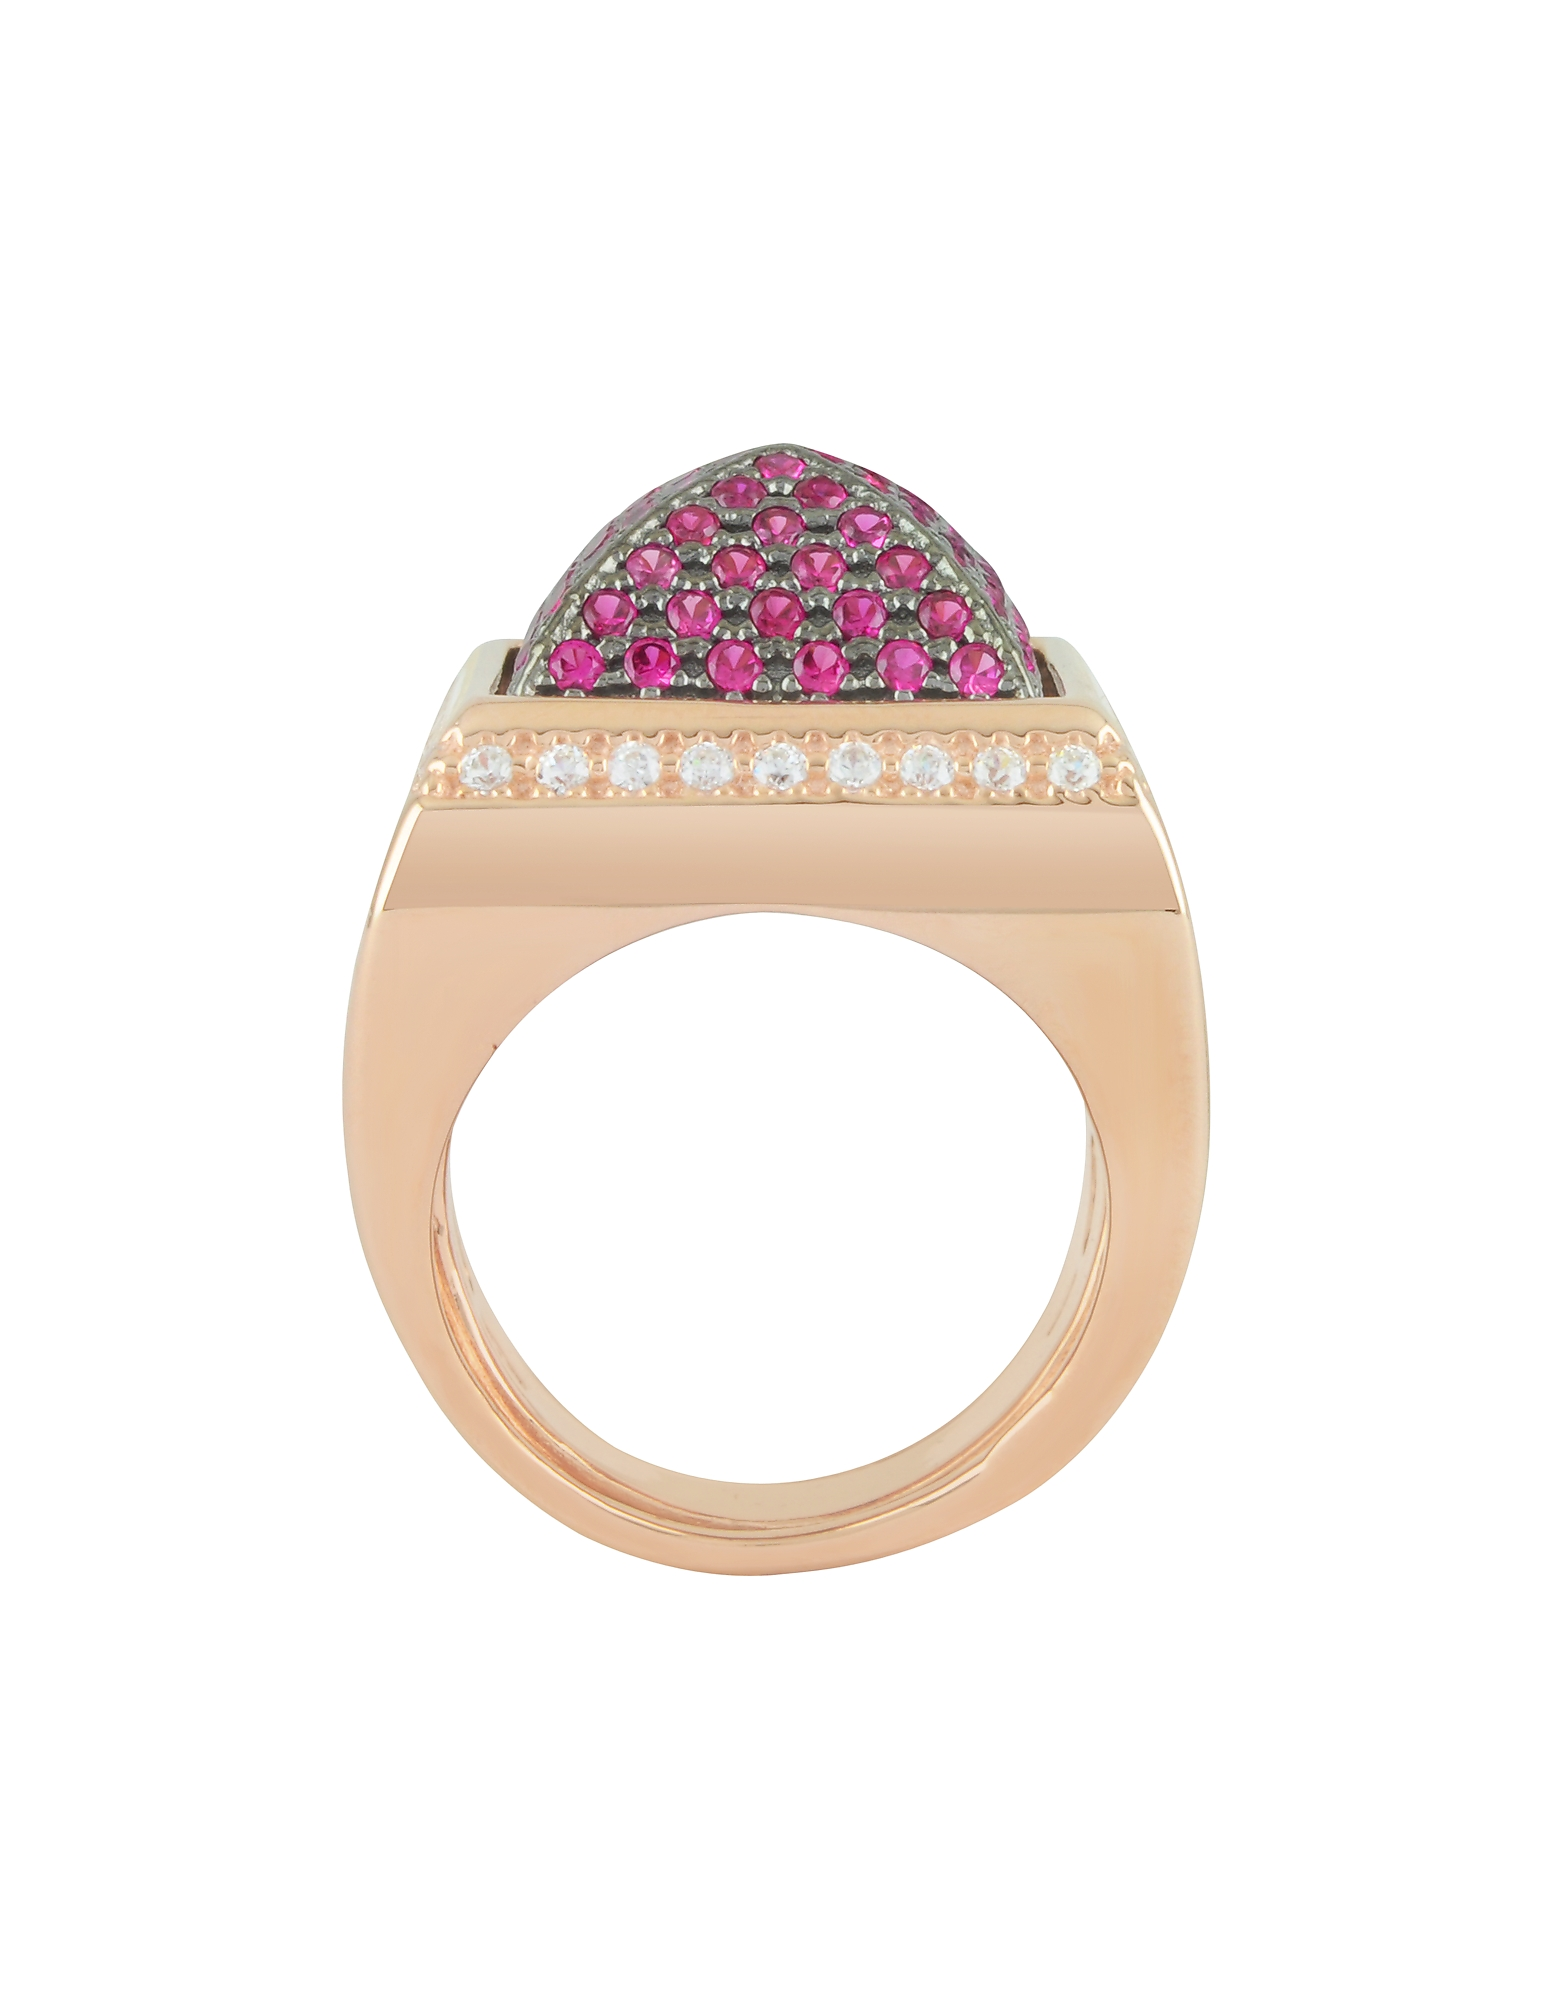 Pink Cubic Zirconia Square Ring от Forzieri.com INT